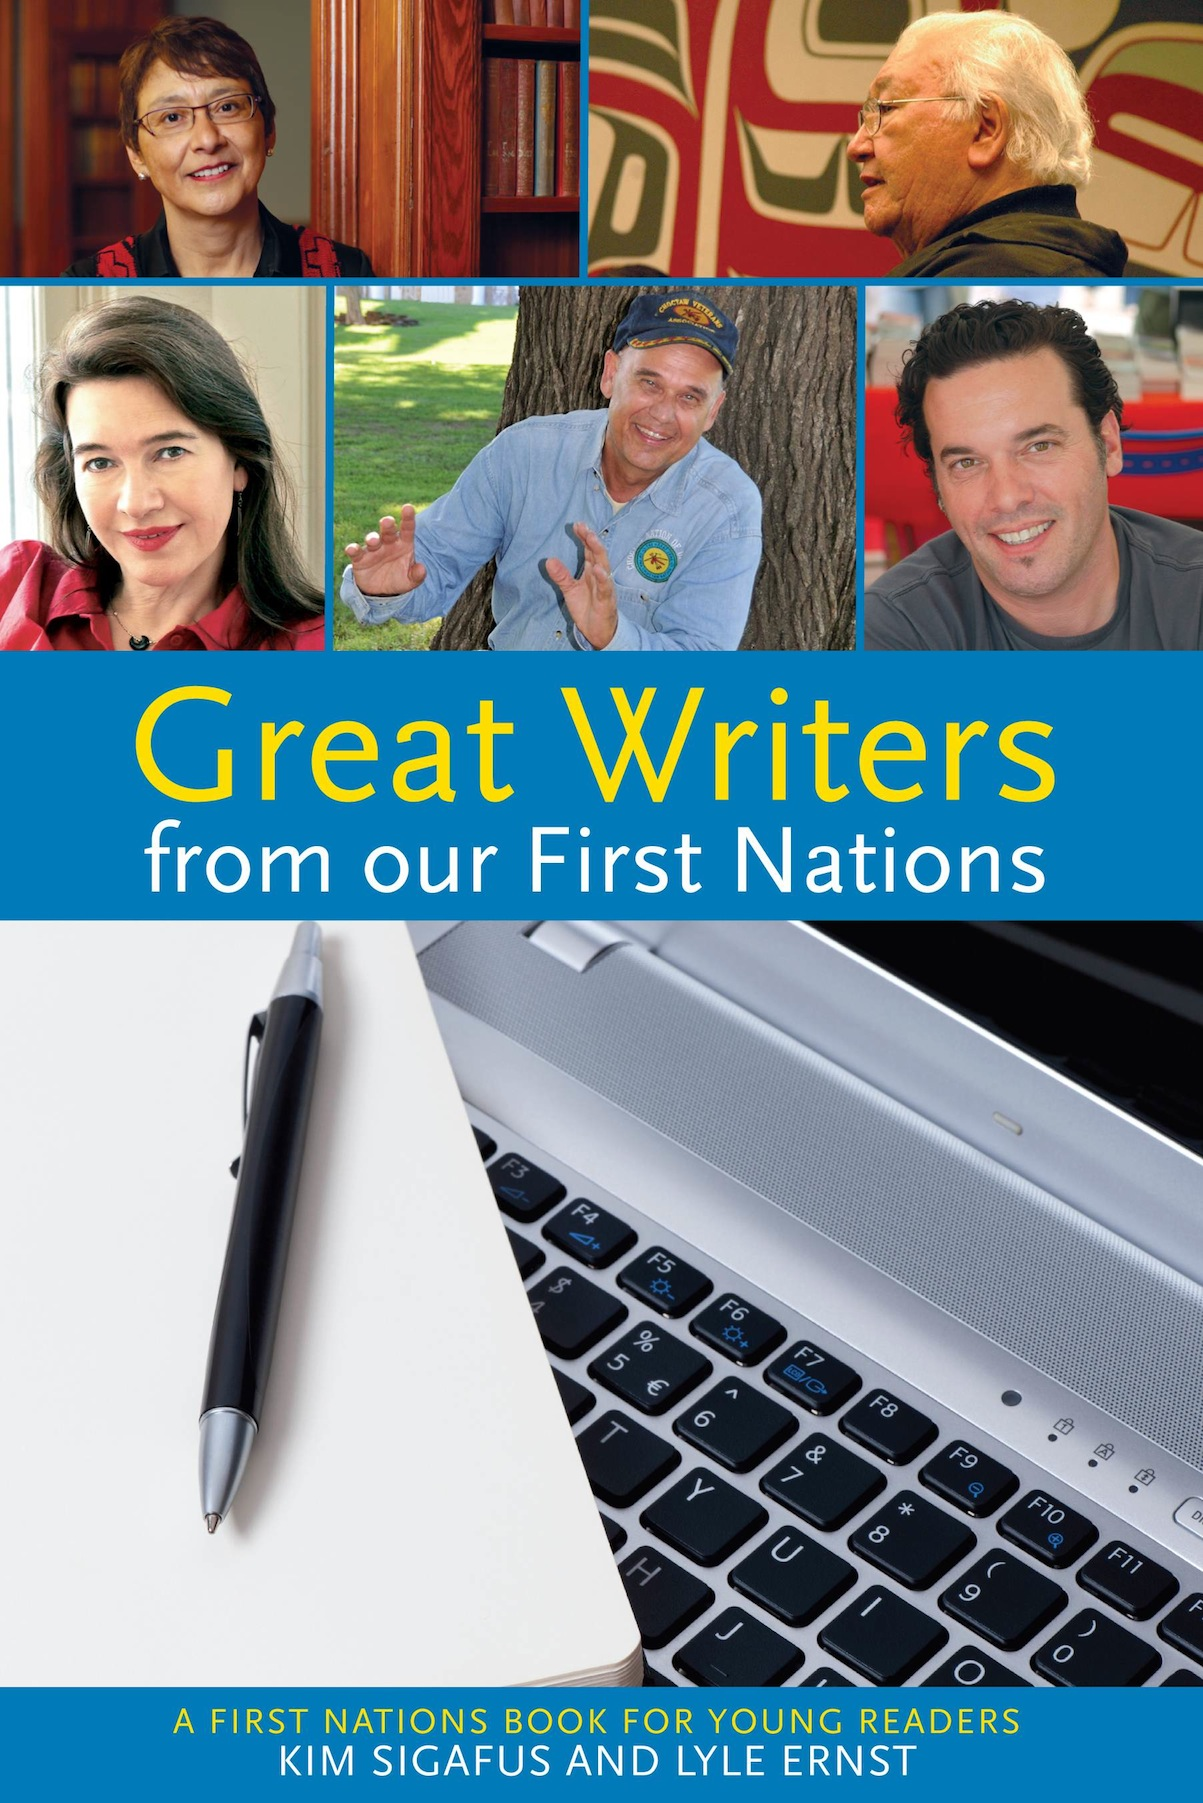 GreatWritersFirstNations